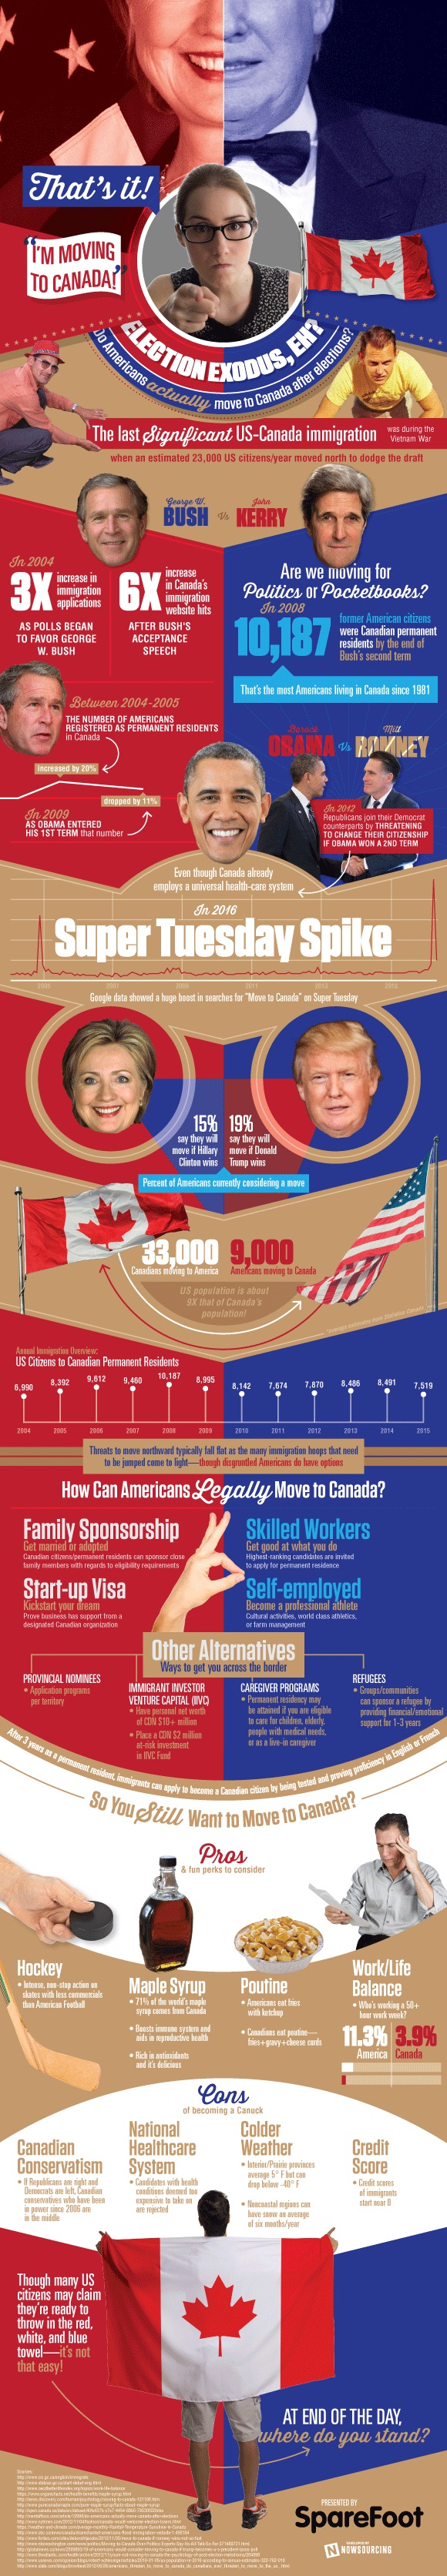 Election Exodus - Moving to Canada infographic